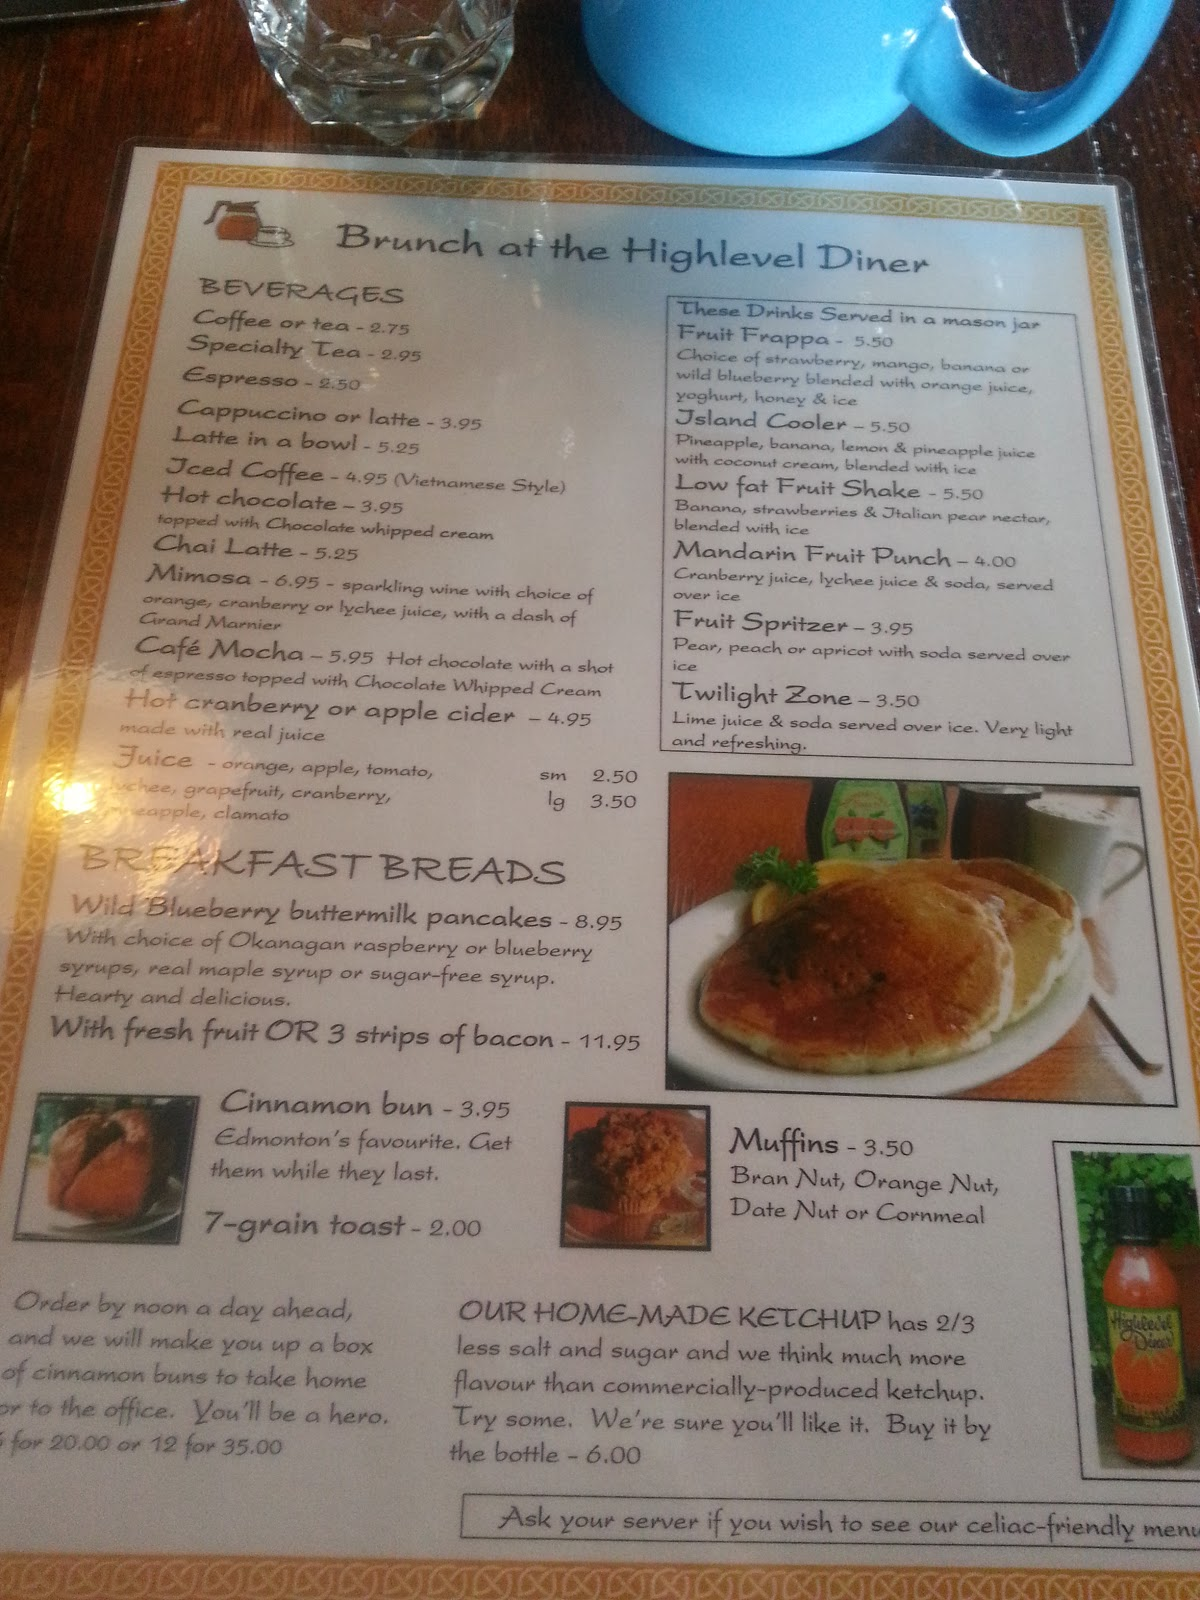 Ihop Menu Edmonton besides Watch Here Oscar Pistorius Takes The Stand In Murder Trial as well 18 in addition Kate Hudson  flix Movies furthermore John Ridley Picture. on oscar pistorius trial live stream 2014 how watch online